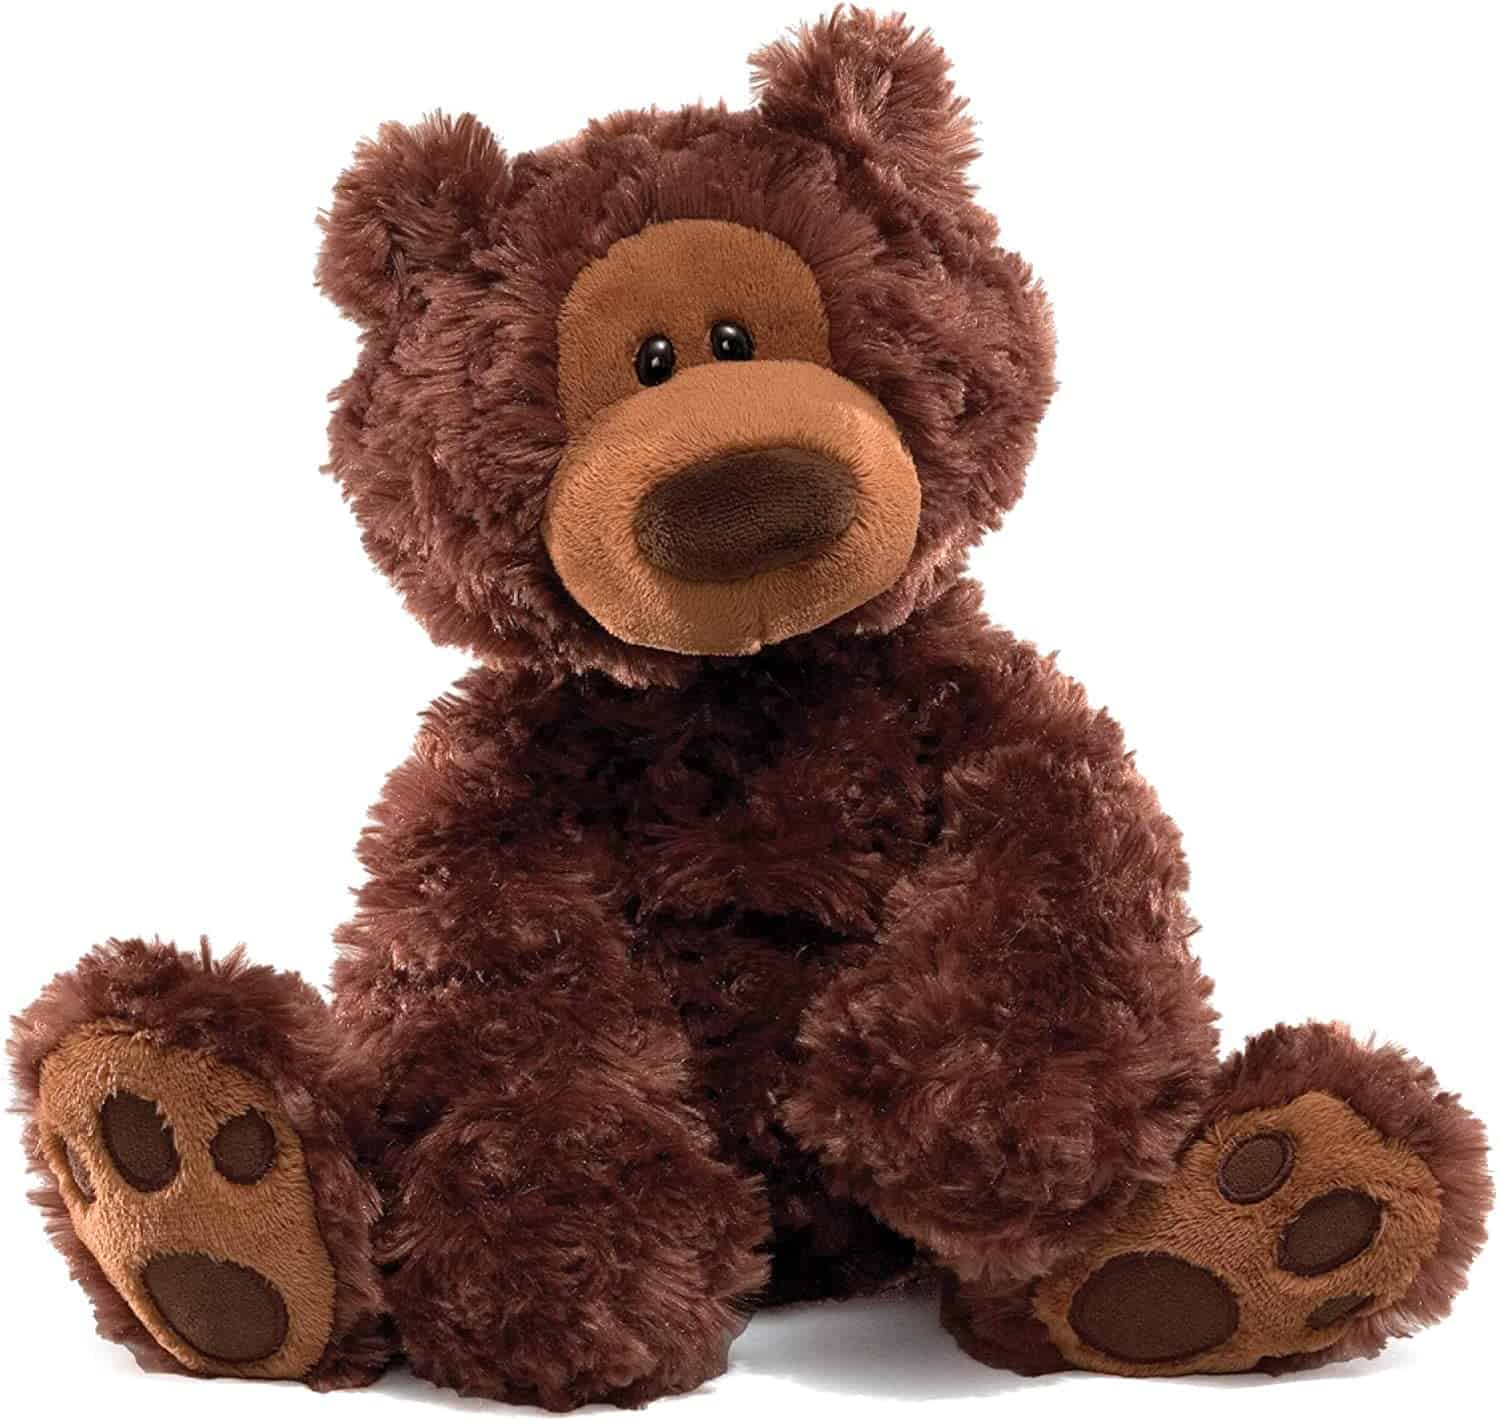 Soft and cuddly Chocolate Philbin Teddy Bear best for babies.